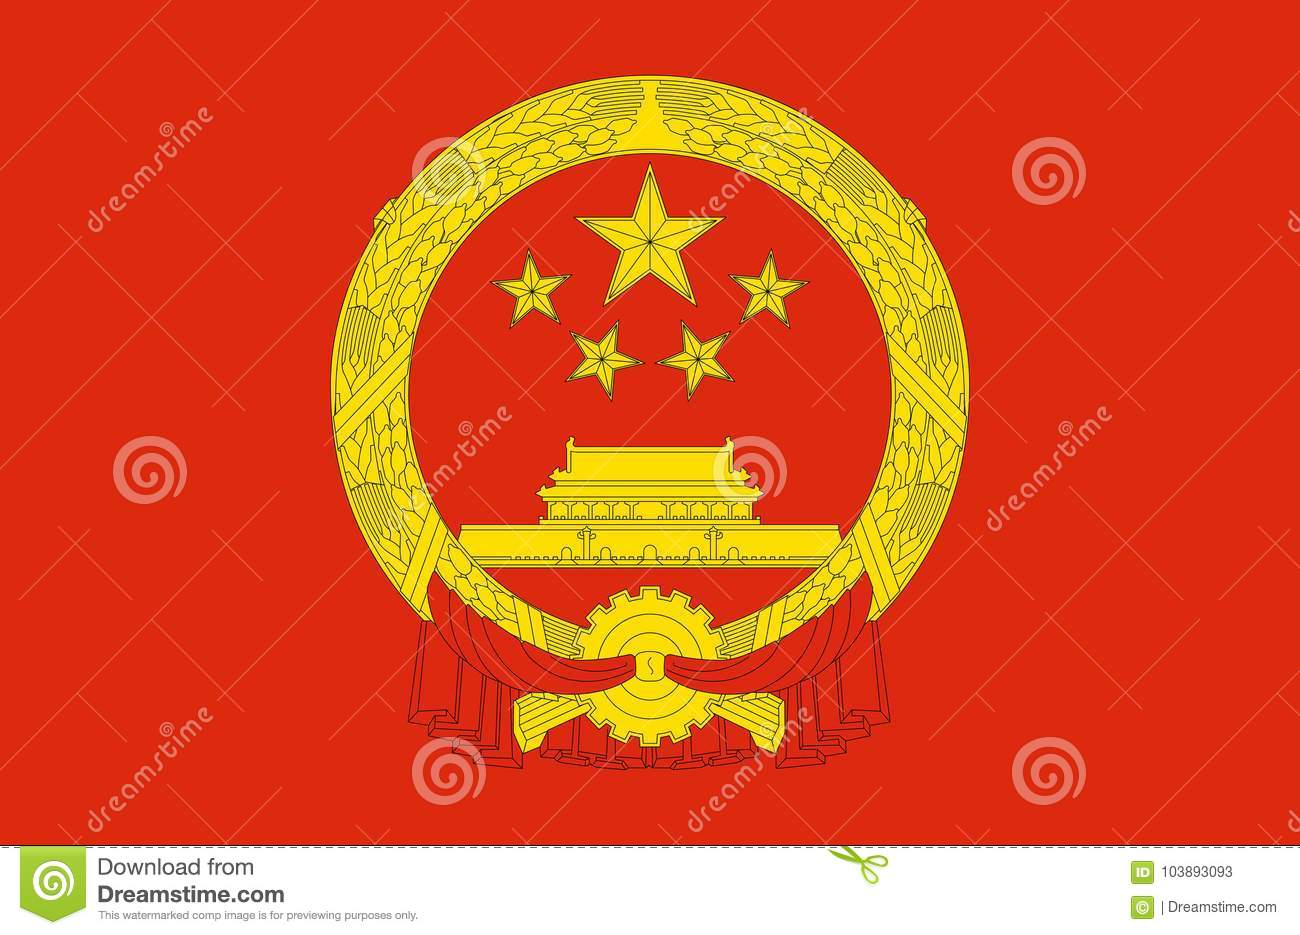 National Emblem Of China Stock Illustration Illustration Of Design